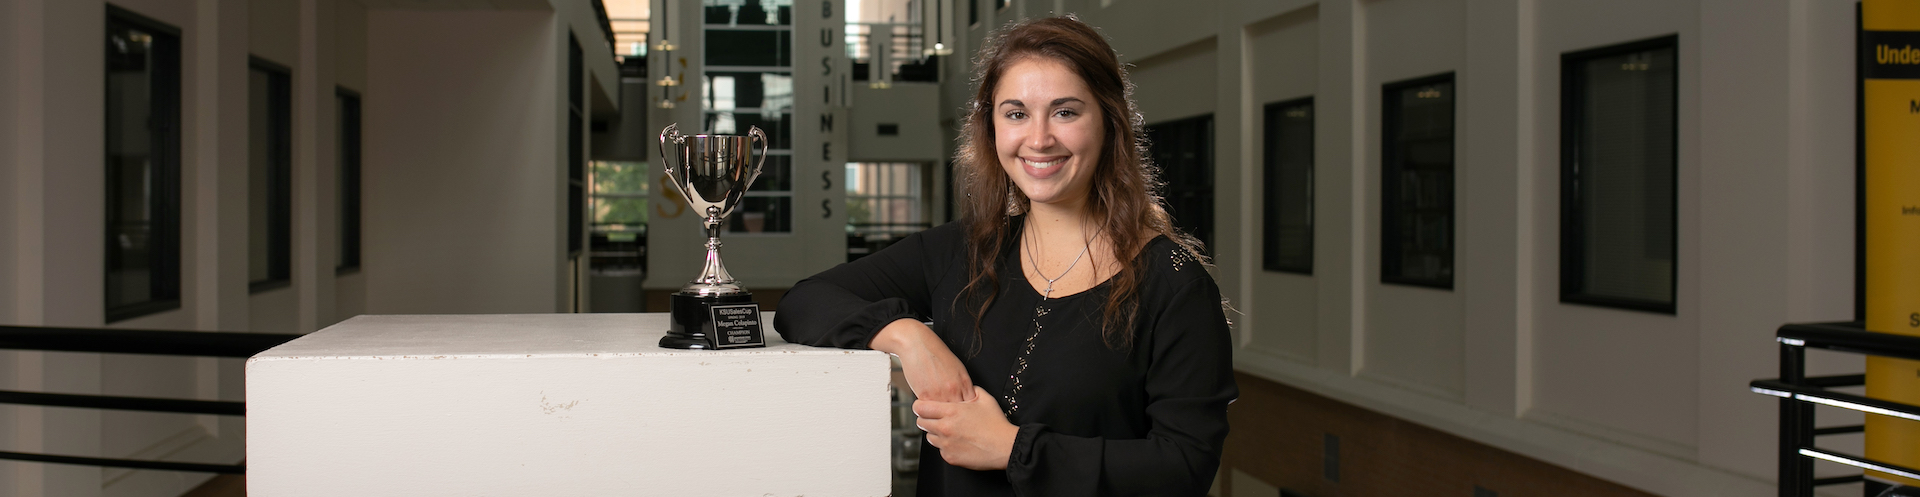 Megan Colapinto captained the KSU Sales Team, winning the KSU Sales Cup competition four consecutive times